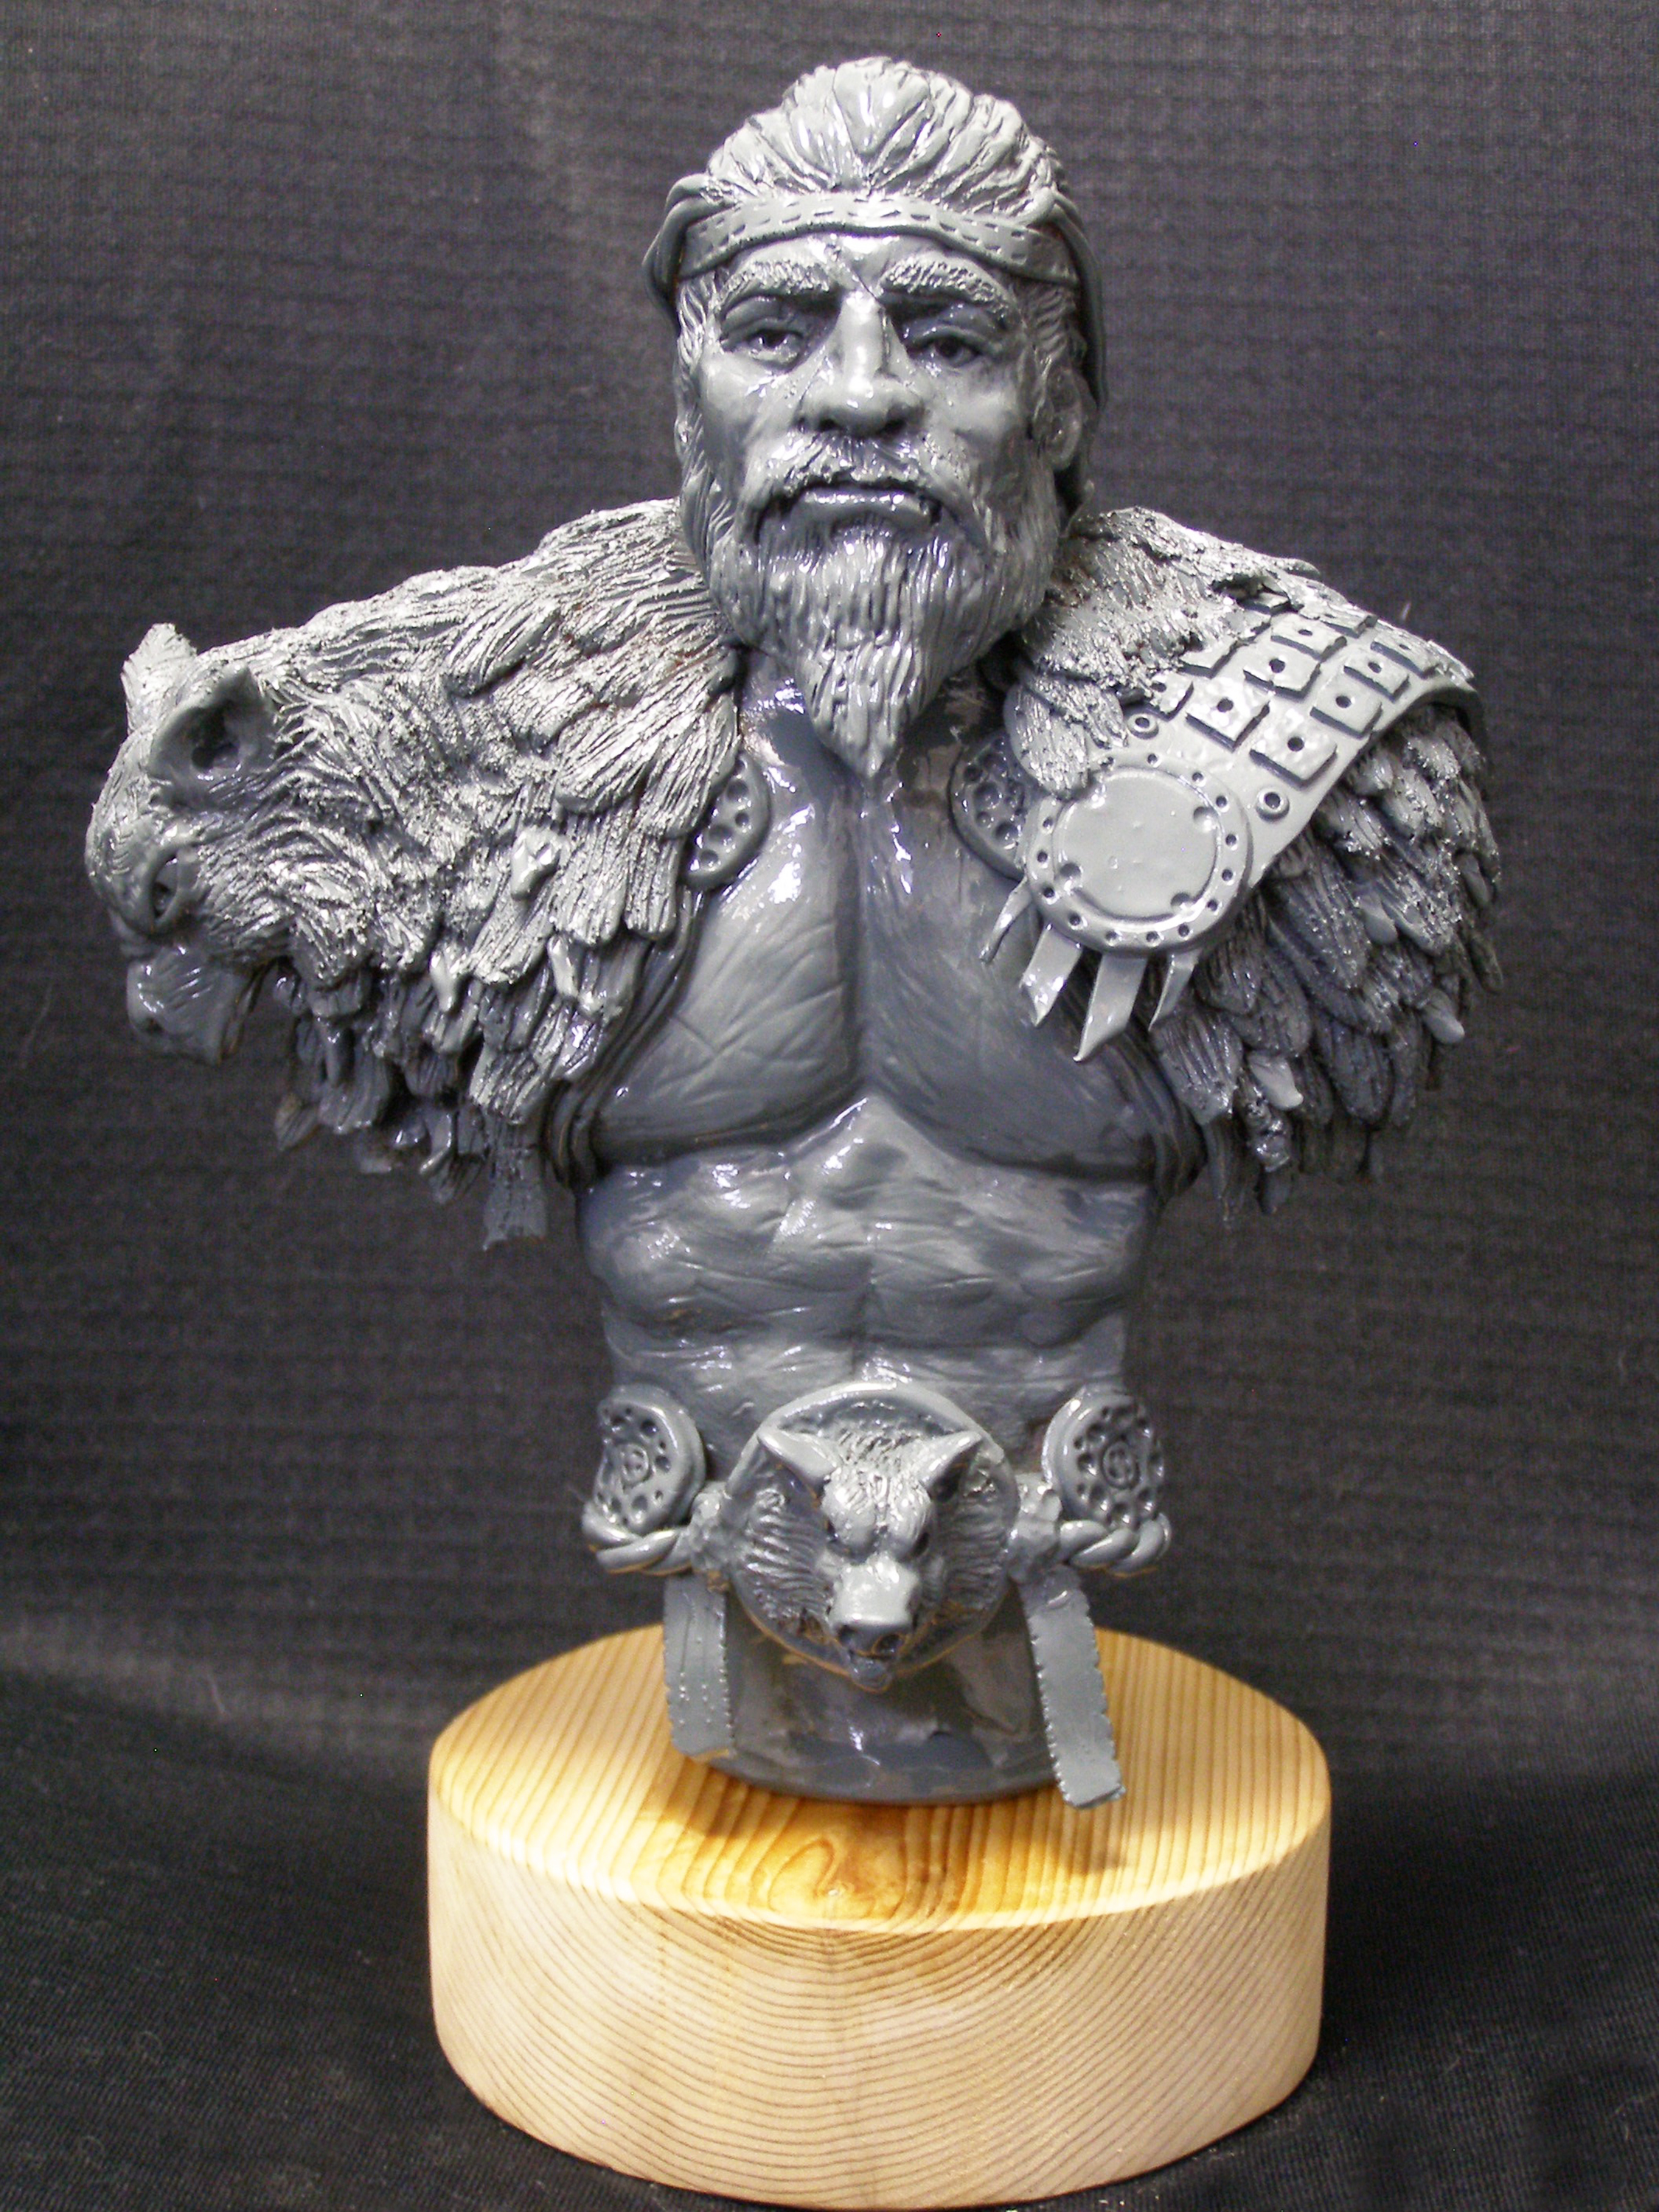 Recent bust sculpting – Providing great production value